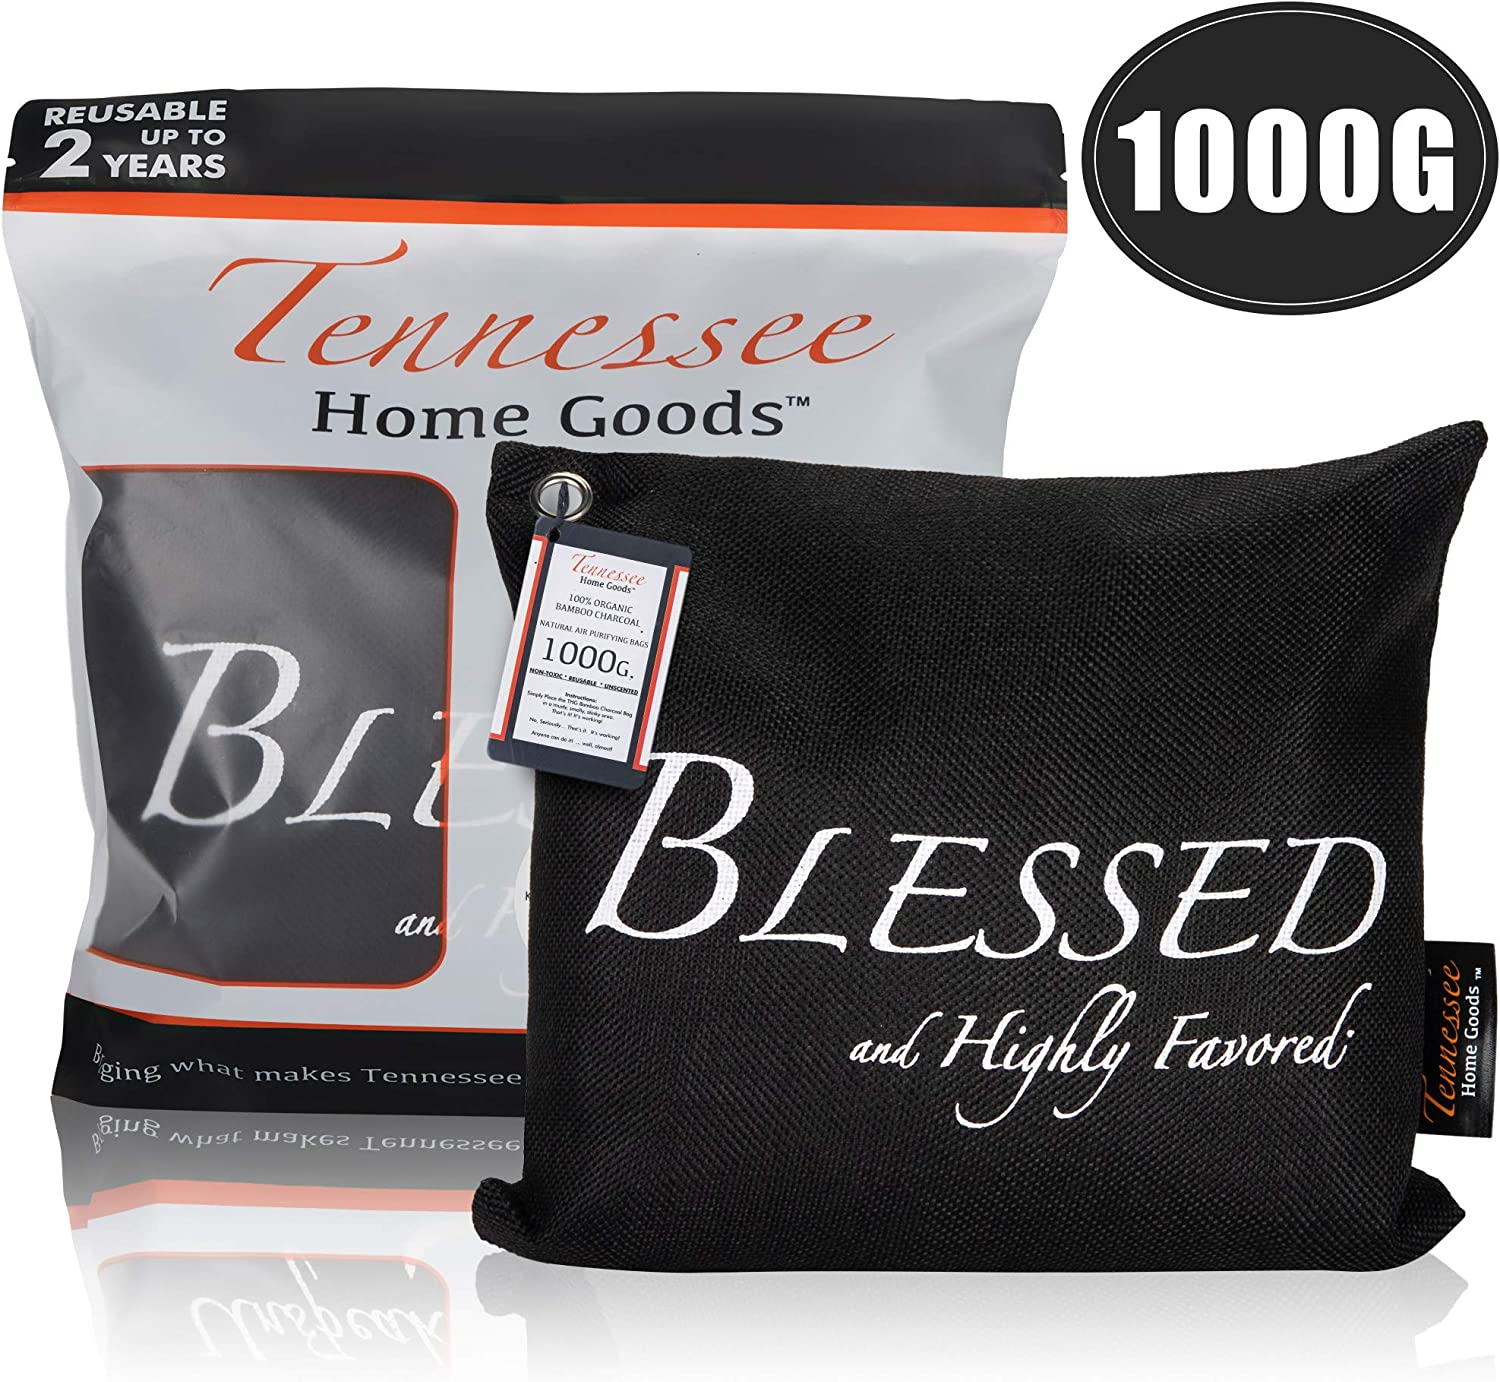 Tennessee Home Goods - Bamboo Charcoal Air Purifying Bags - Organic Odor Absorber, Safe for Kids, Pets - Decorative, Stylish Design - Home, Gym, Office, Car Purifier - Blessed & Highly Favored- 1000g